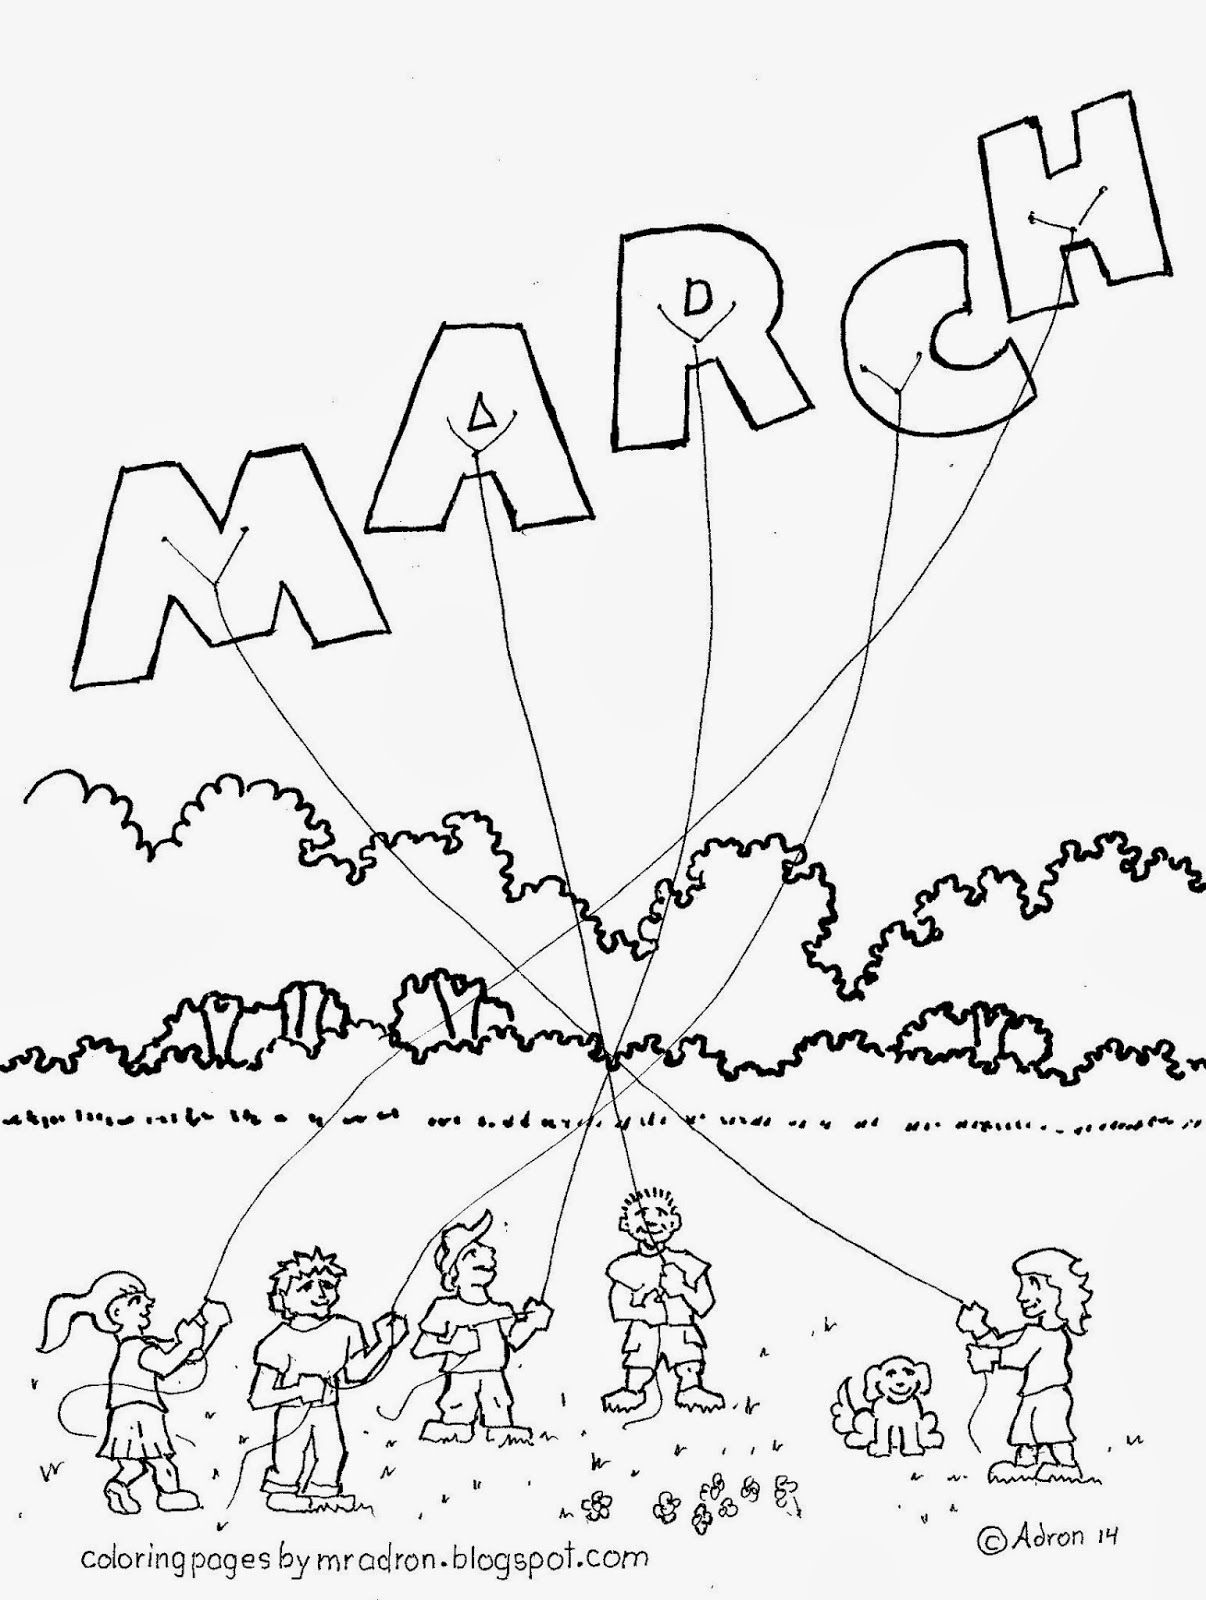 Pin By Adron Dozat On Coloring Pages For Kid | Free Coloring